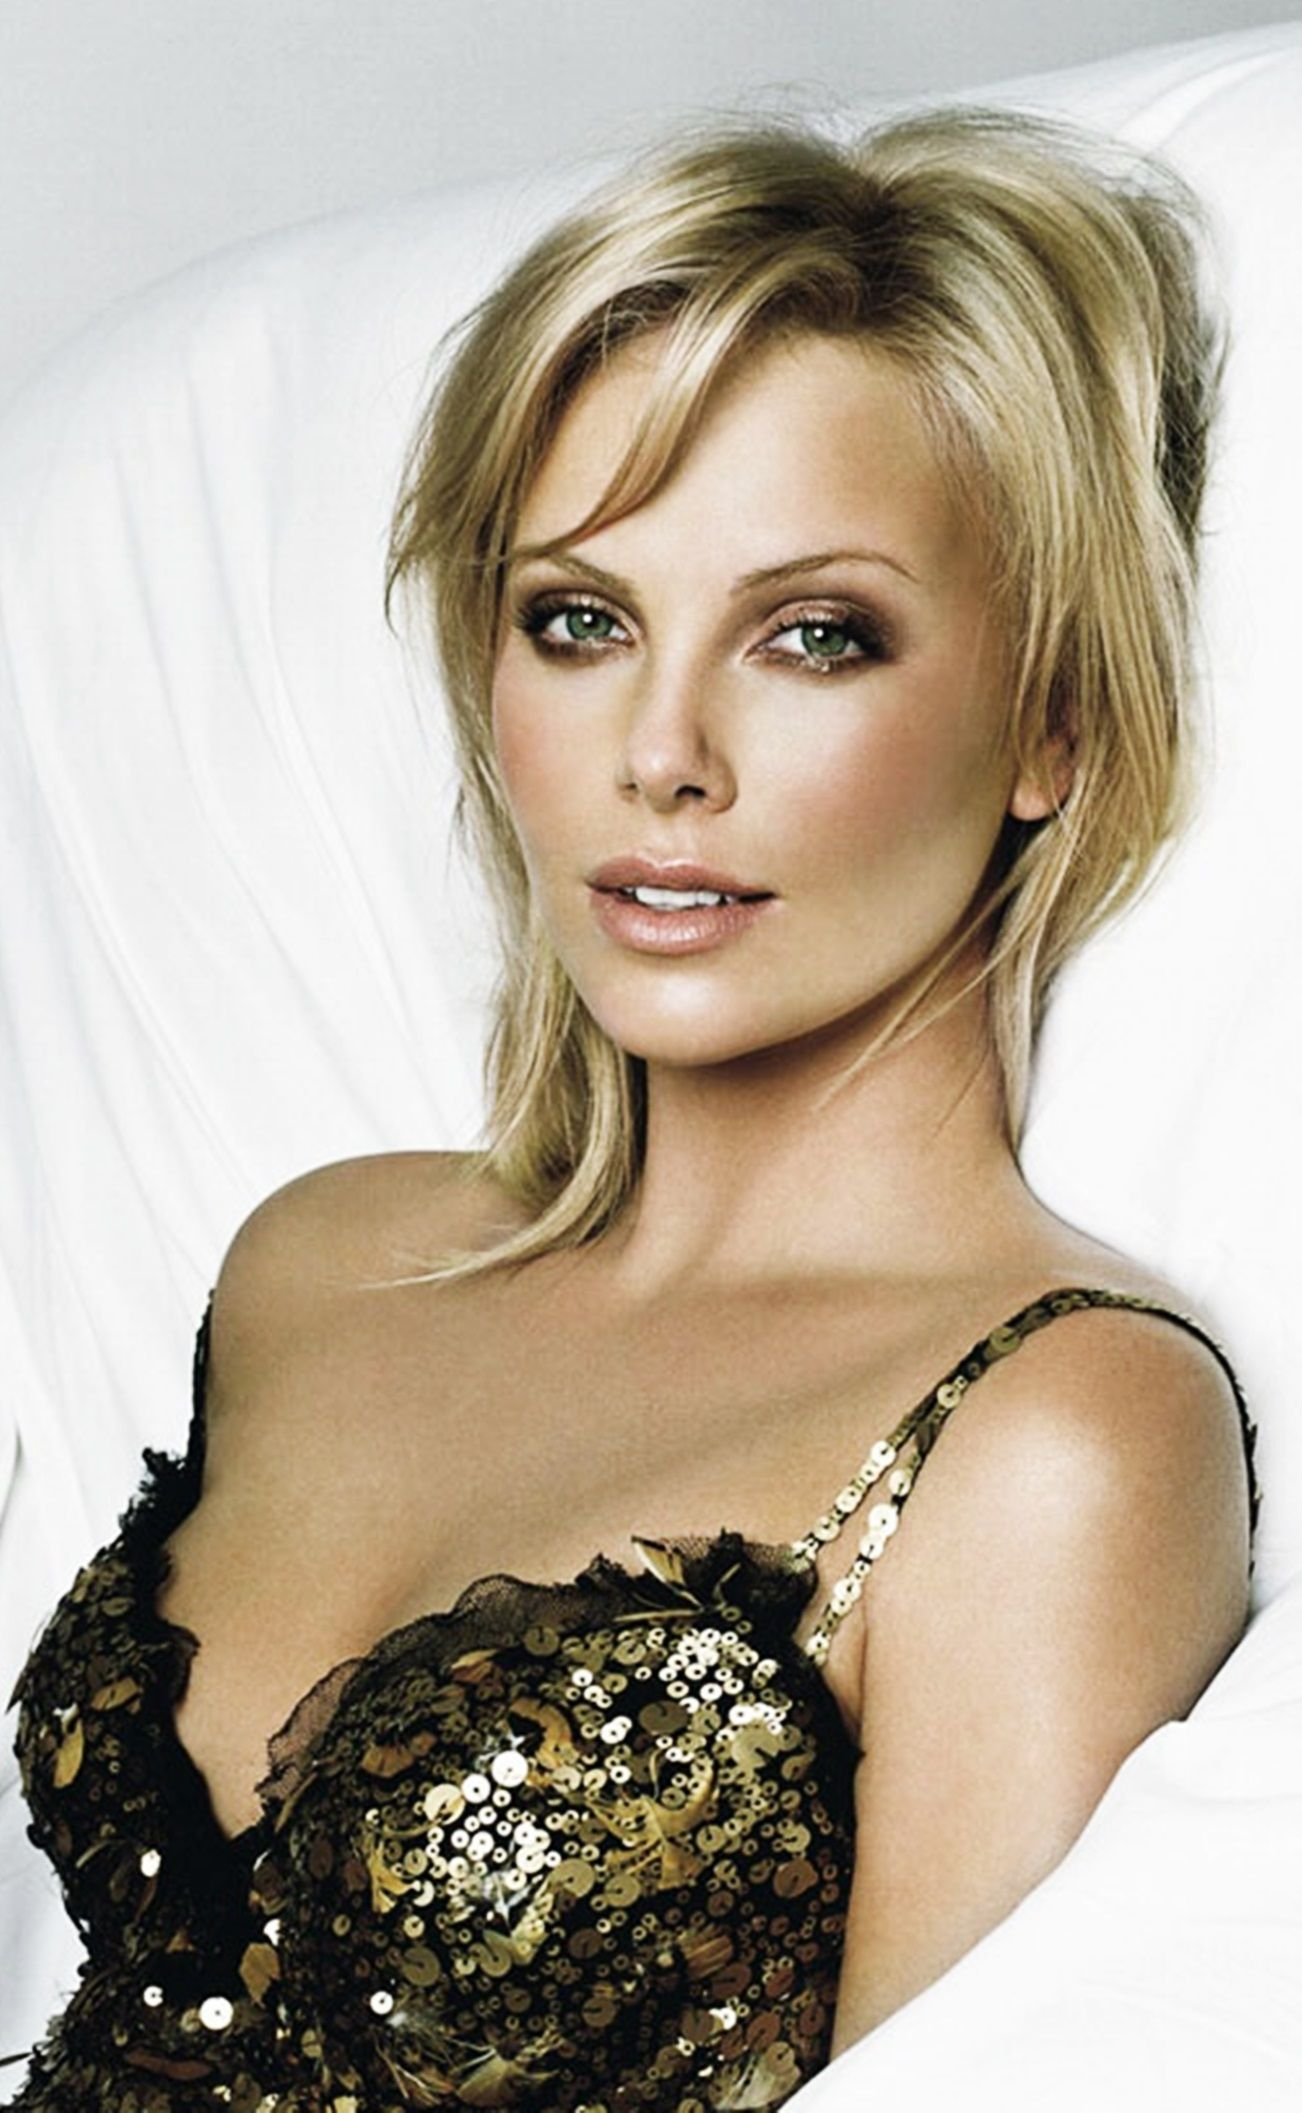 Charlize Theron Dior 2020 Wallpaper, HD Celebrities 4K